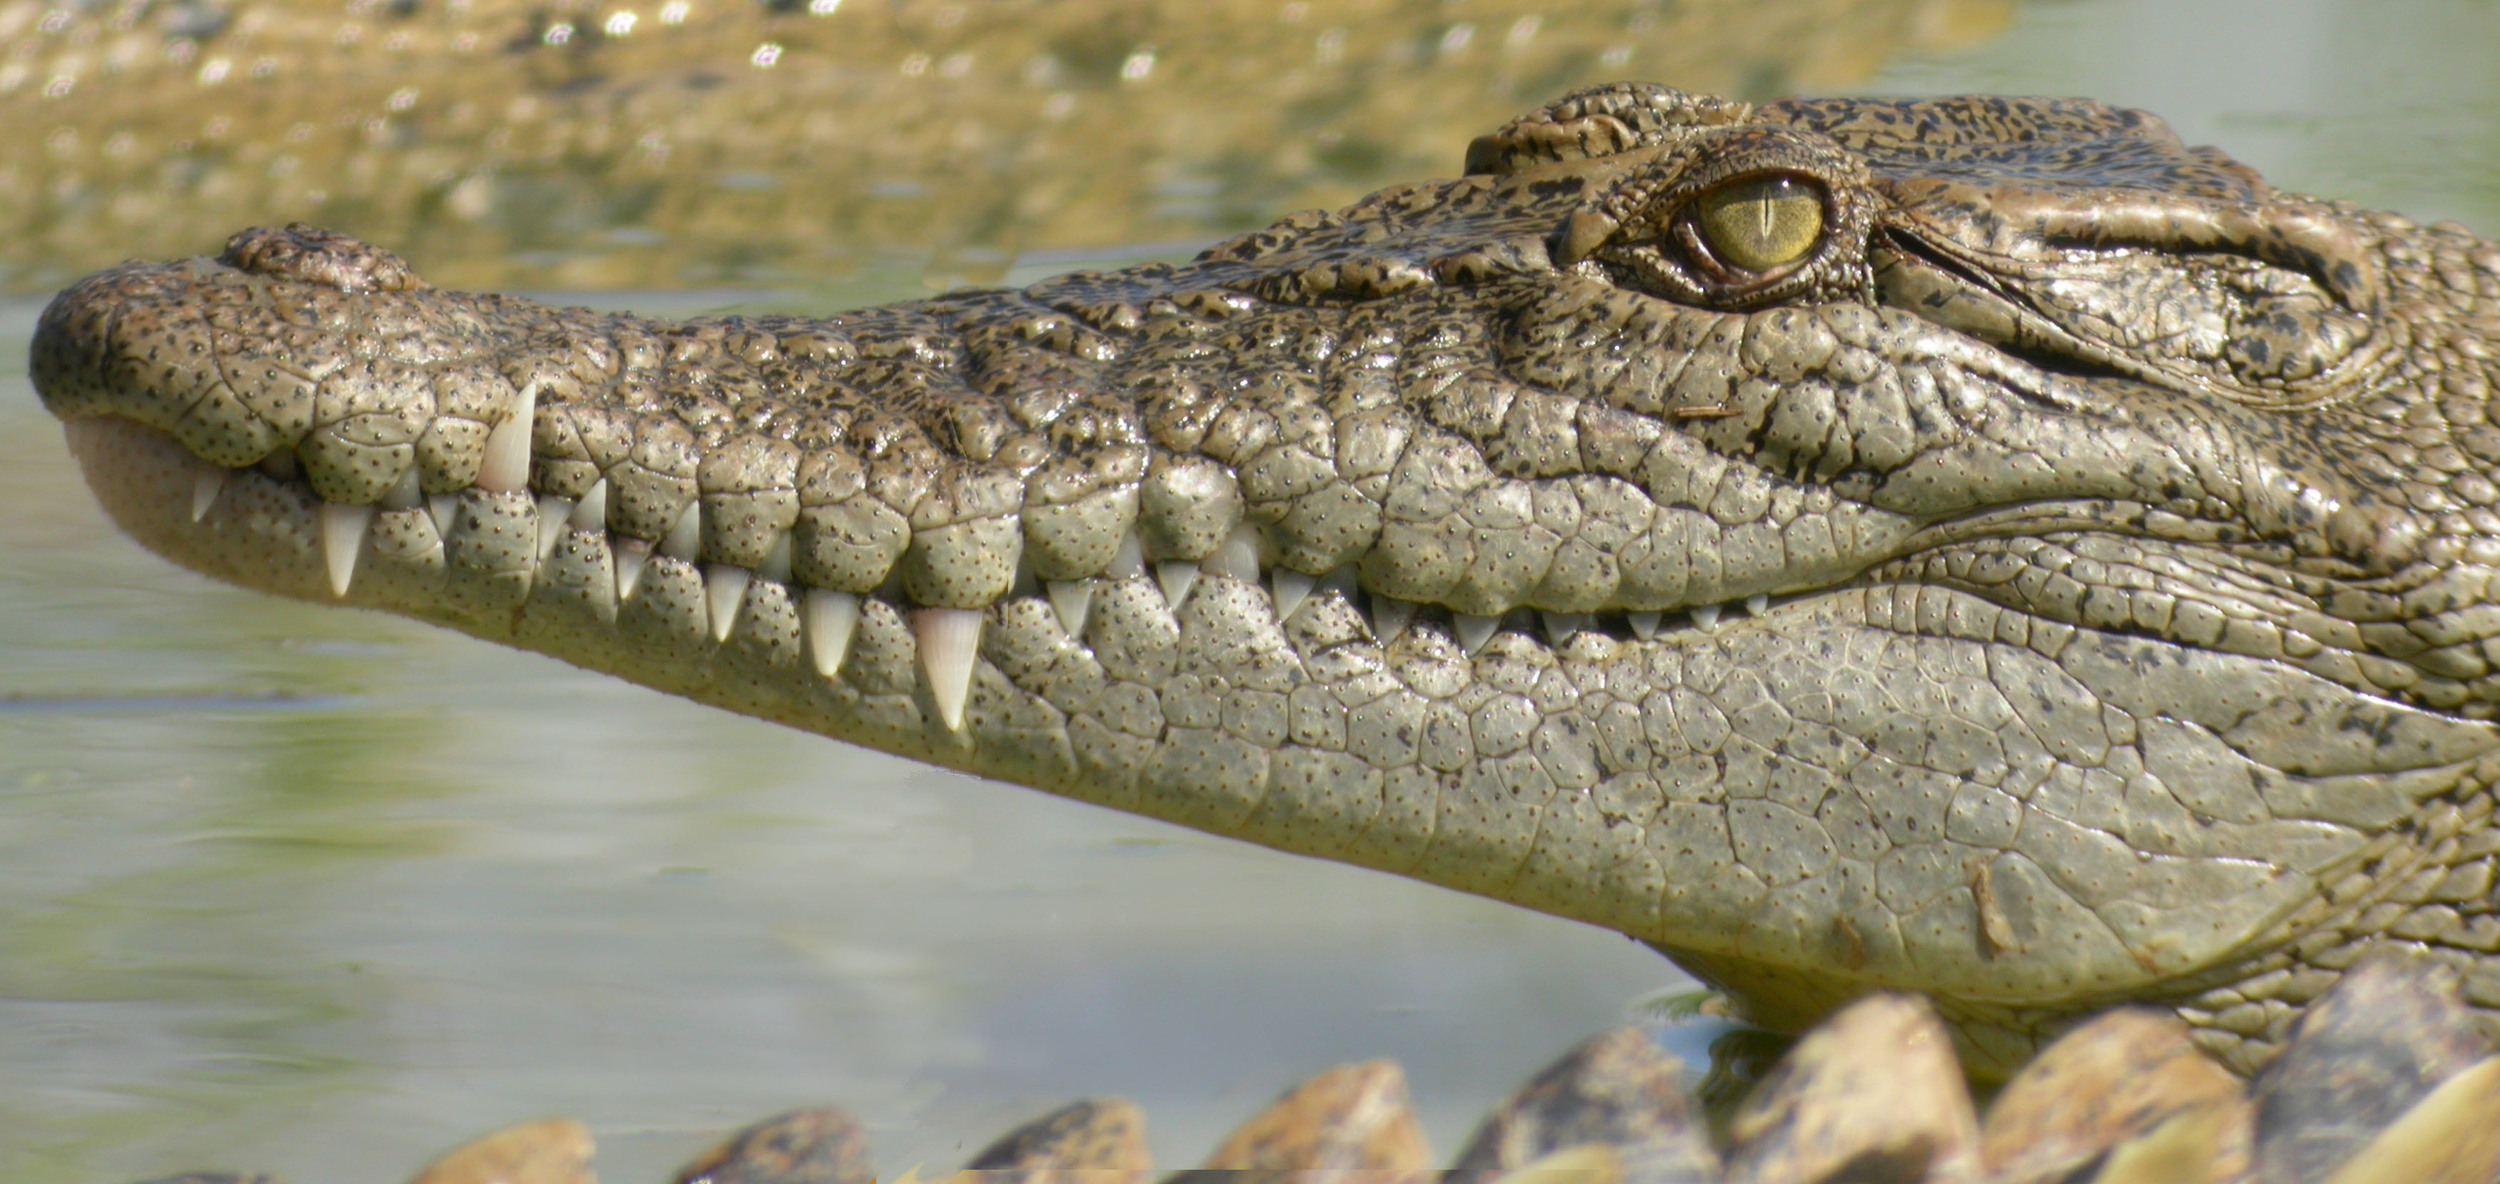 Crocodylus_porosus_20040525_Cairns_Croc_Farm_Qld_26.jpg